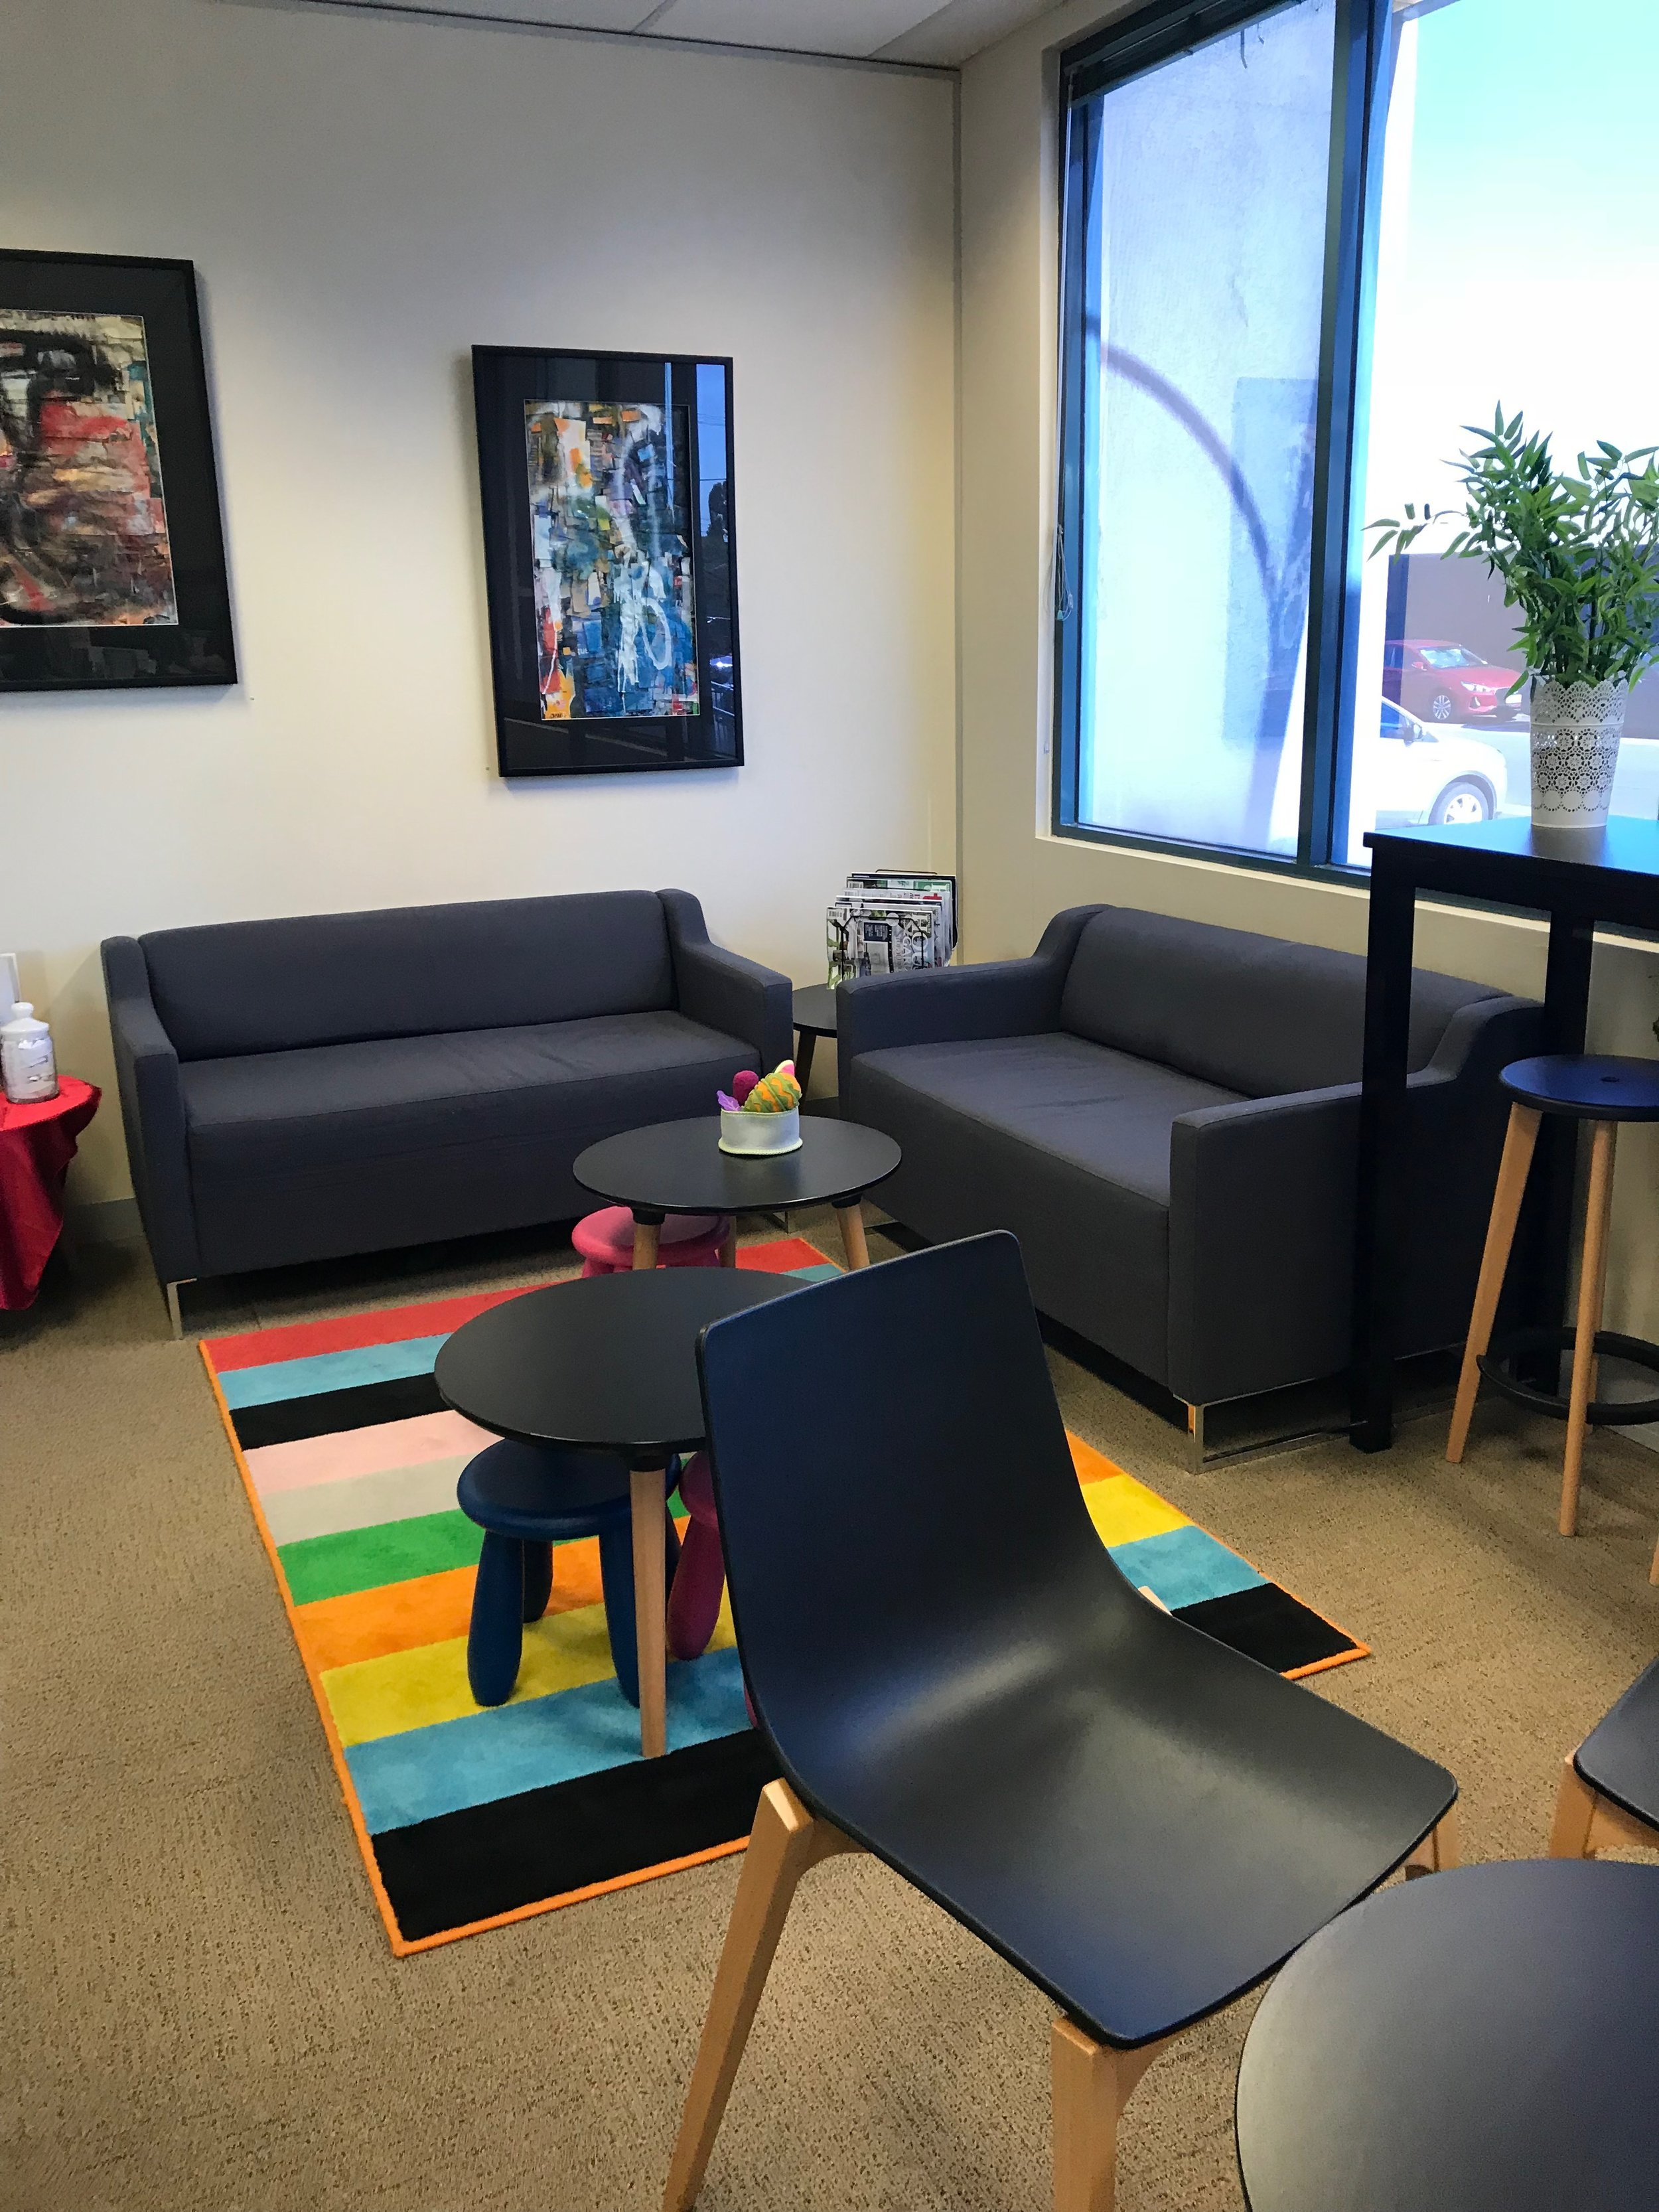 The entry includes a lounge and social enterprise cafe, a soft entry point for the community to access services as well as just a nice space to be!